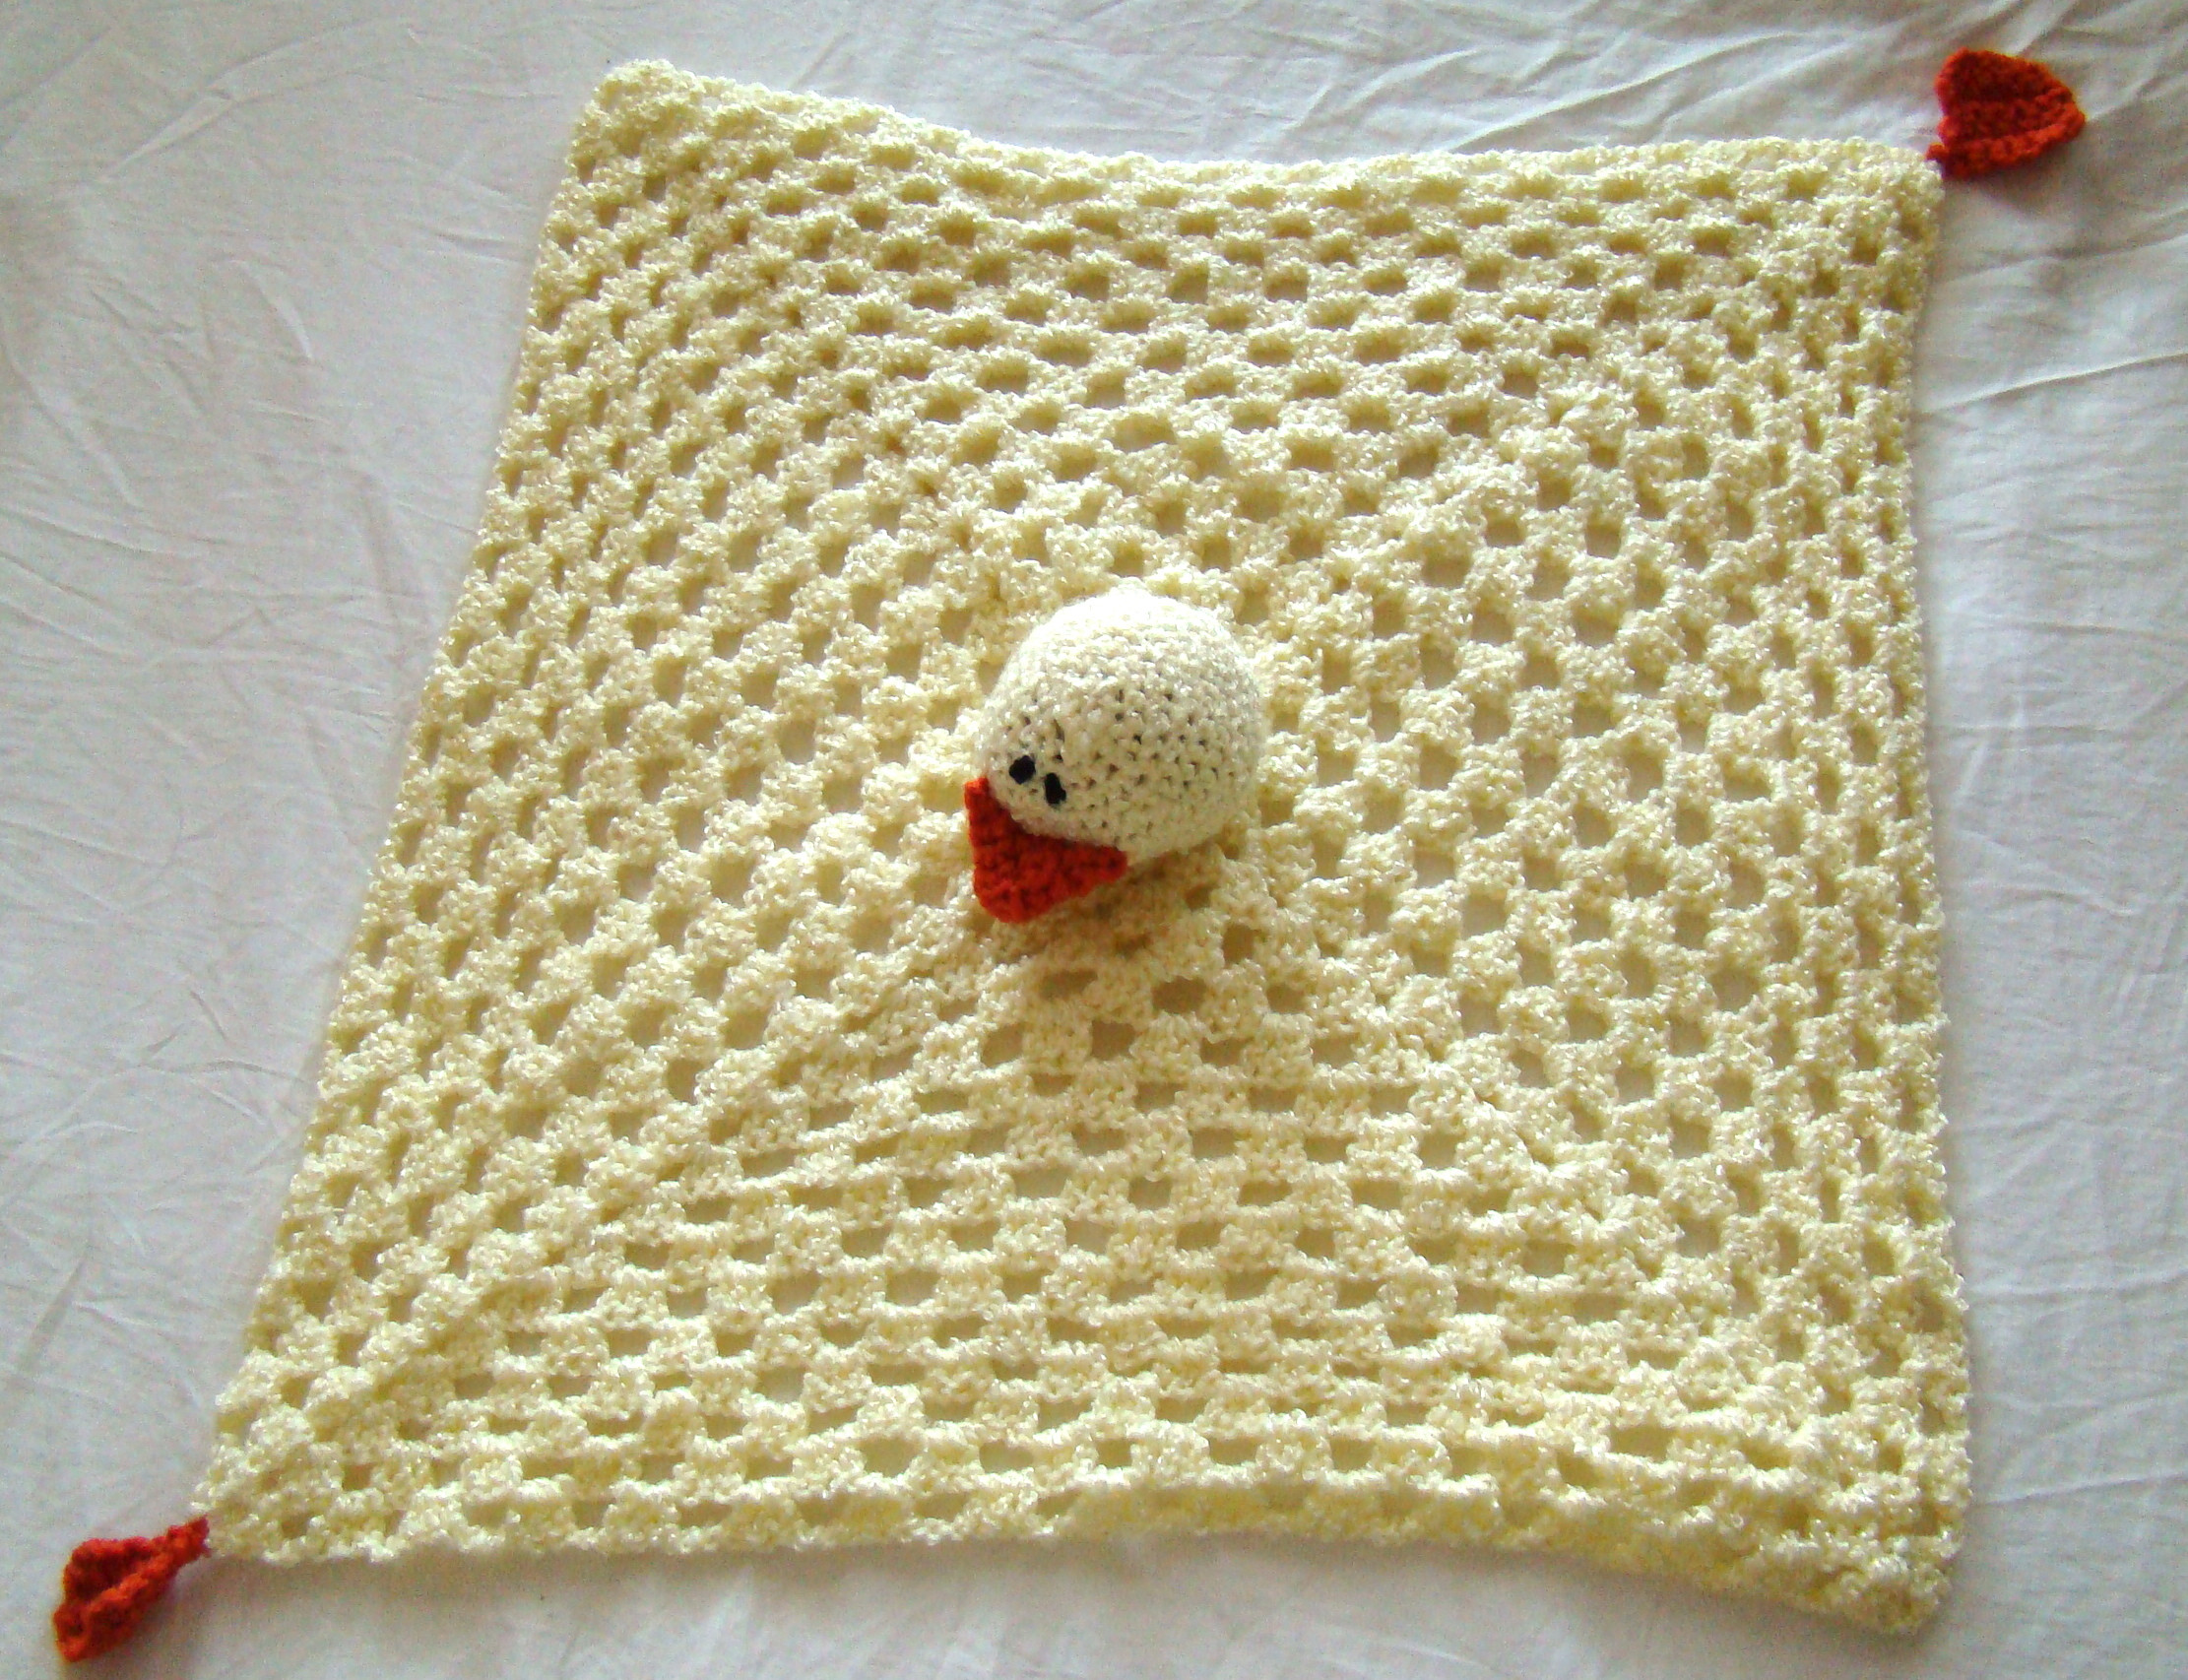 Inspirational Fast Easy Crochet Baby Gift Crochet Baby Stuff Of Superb 43 Models Crochet Baby Stuff